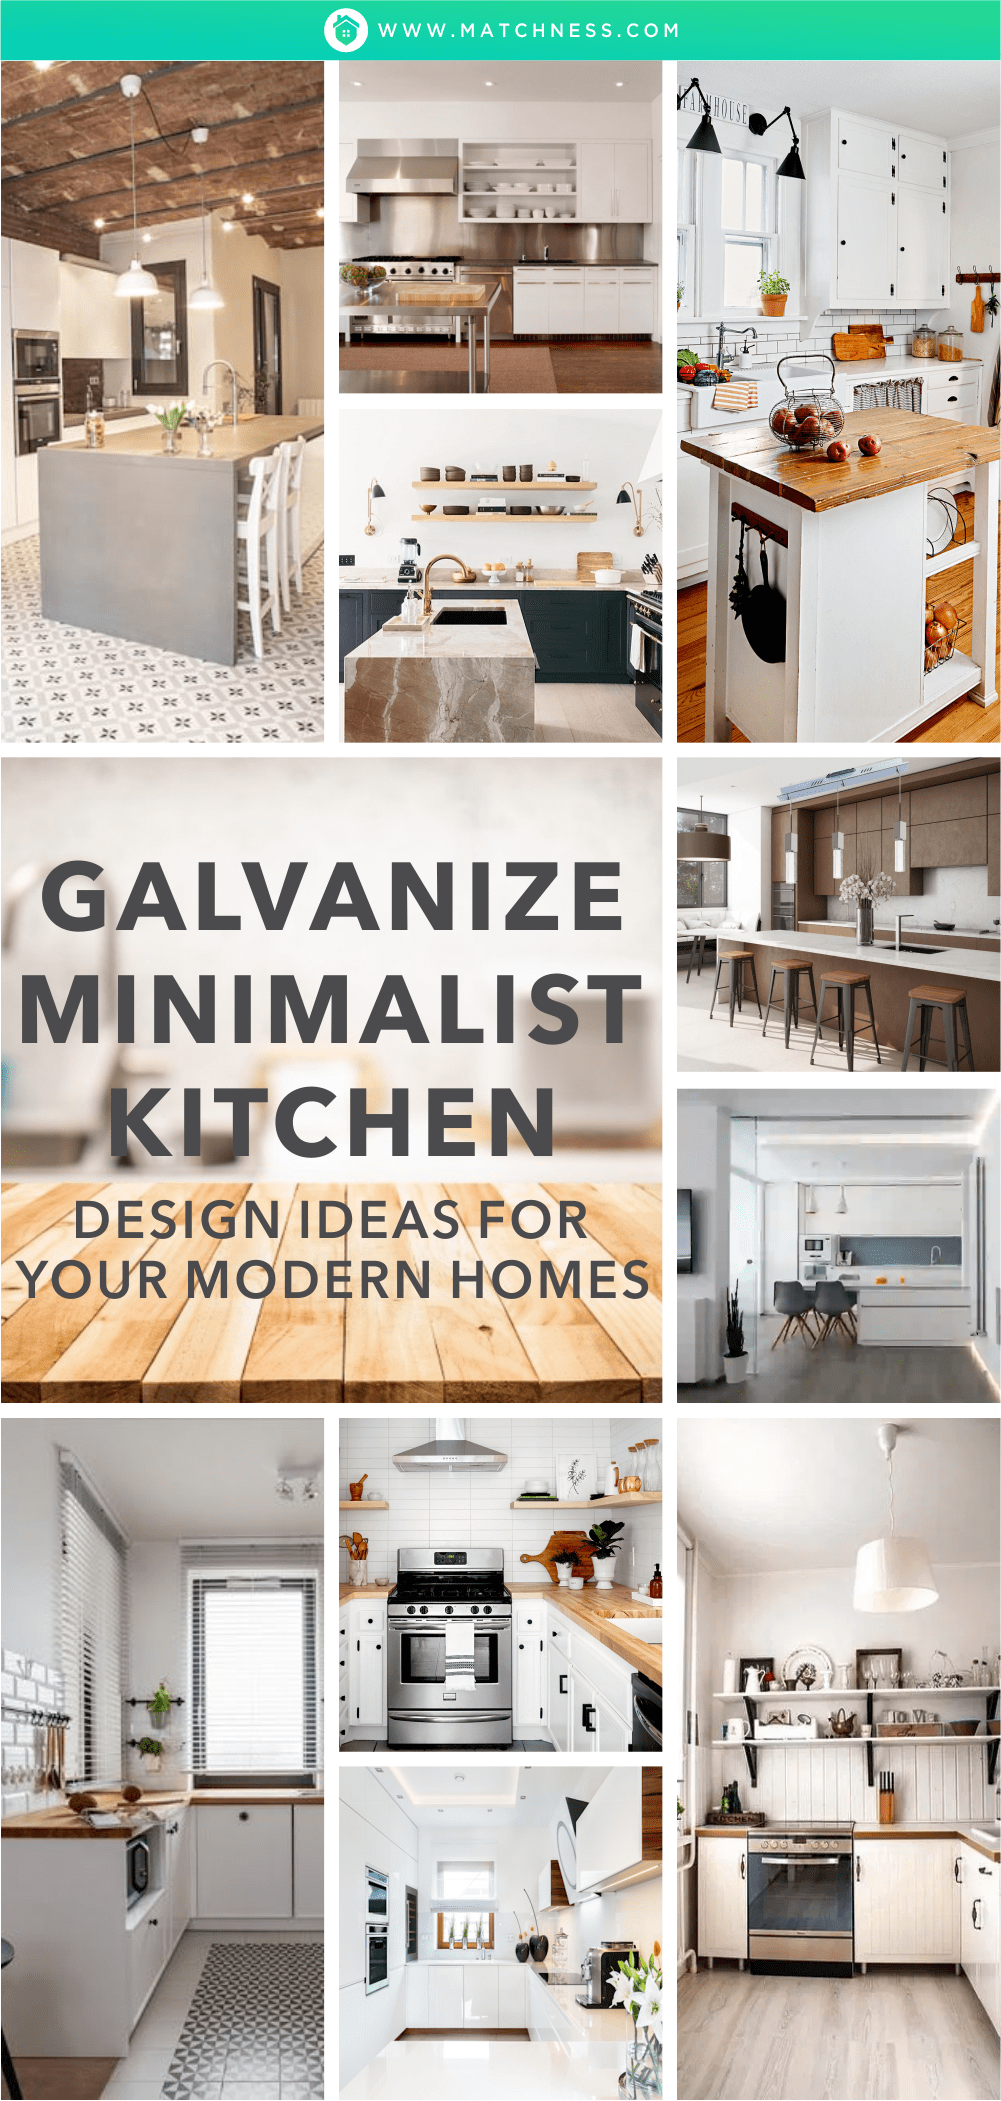 Galvanize-minimalist-kitchen-design-ideas-for-your-modern-homes-1